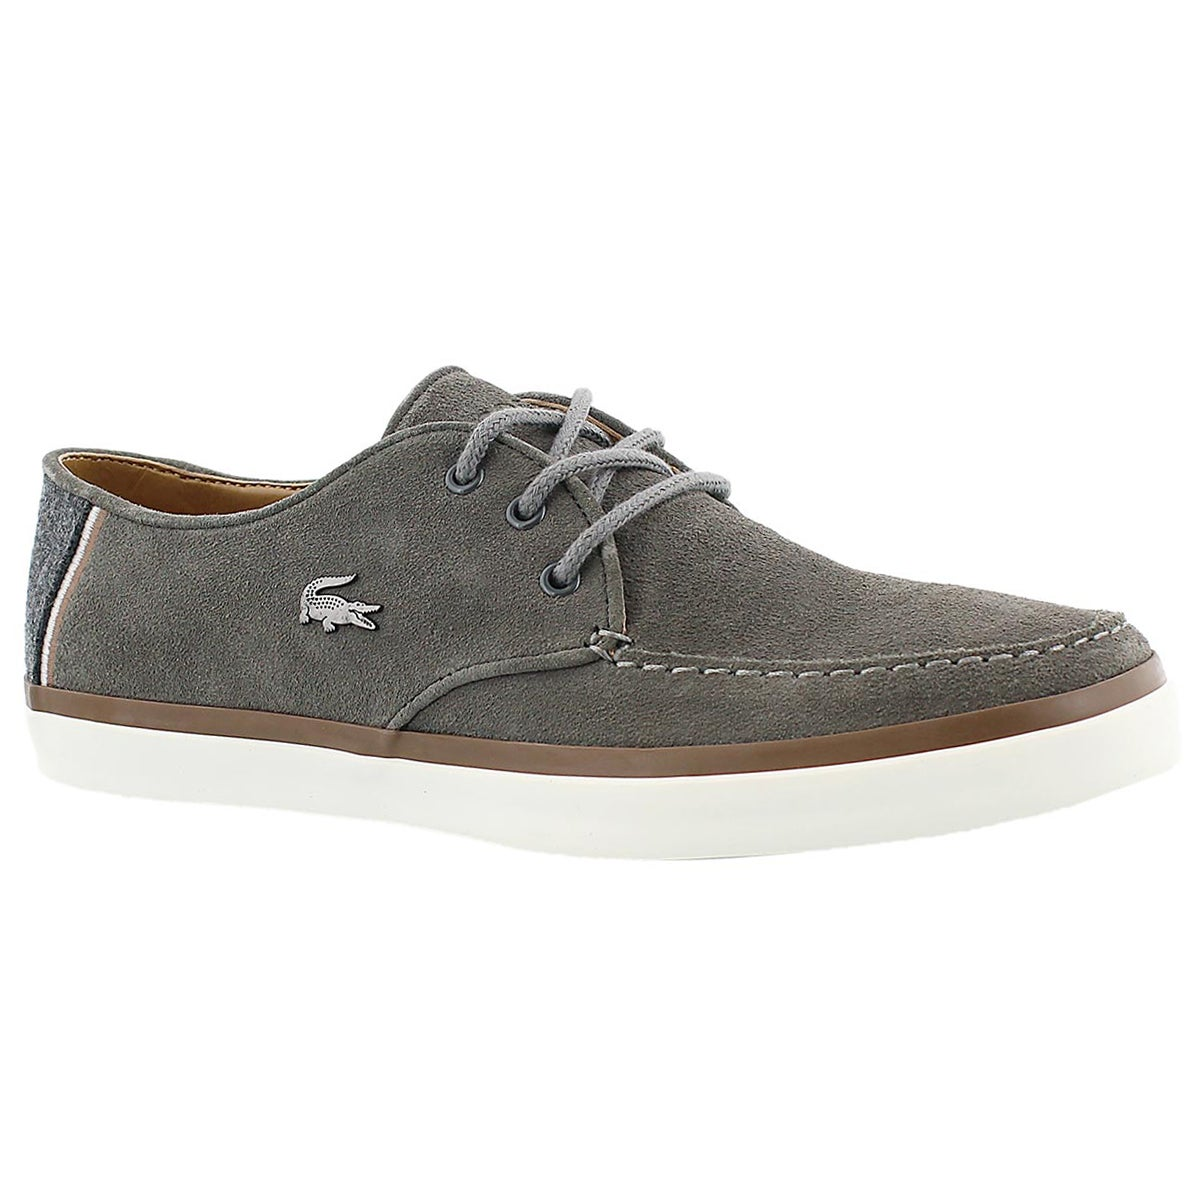 Mn Sevrin 2 LCR grey casual oxford